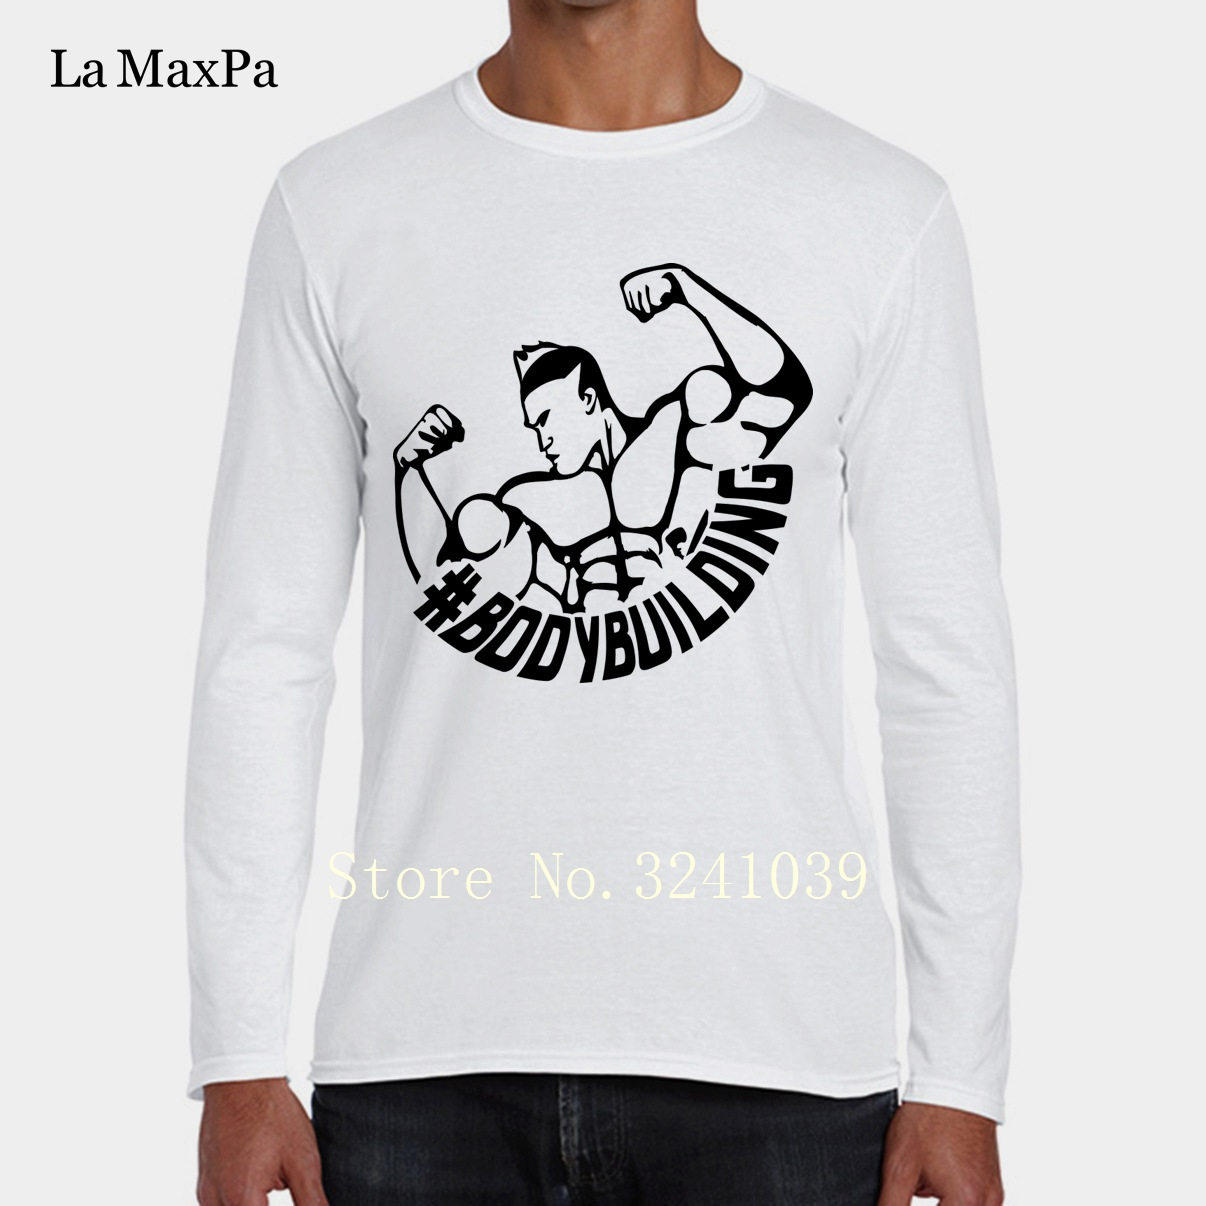 Winter Tee La Maxpa Bodybuilding Logo Tee Shirt For Men Funny Casual Men T Shirt Winter Style O Neck Unisex Tshirt For Men In T Shirts From Men S Clothing